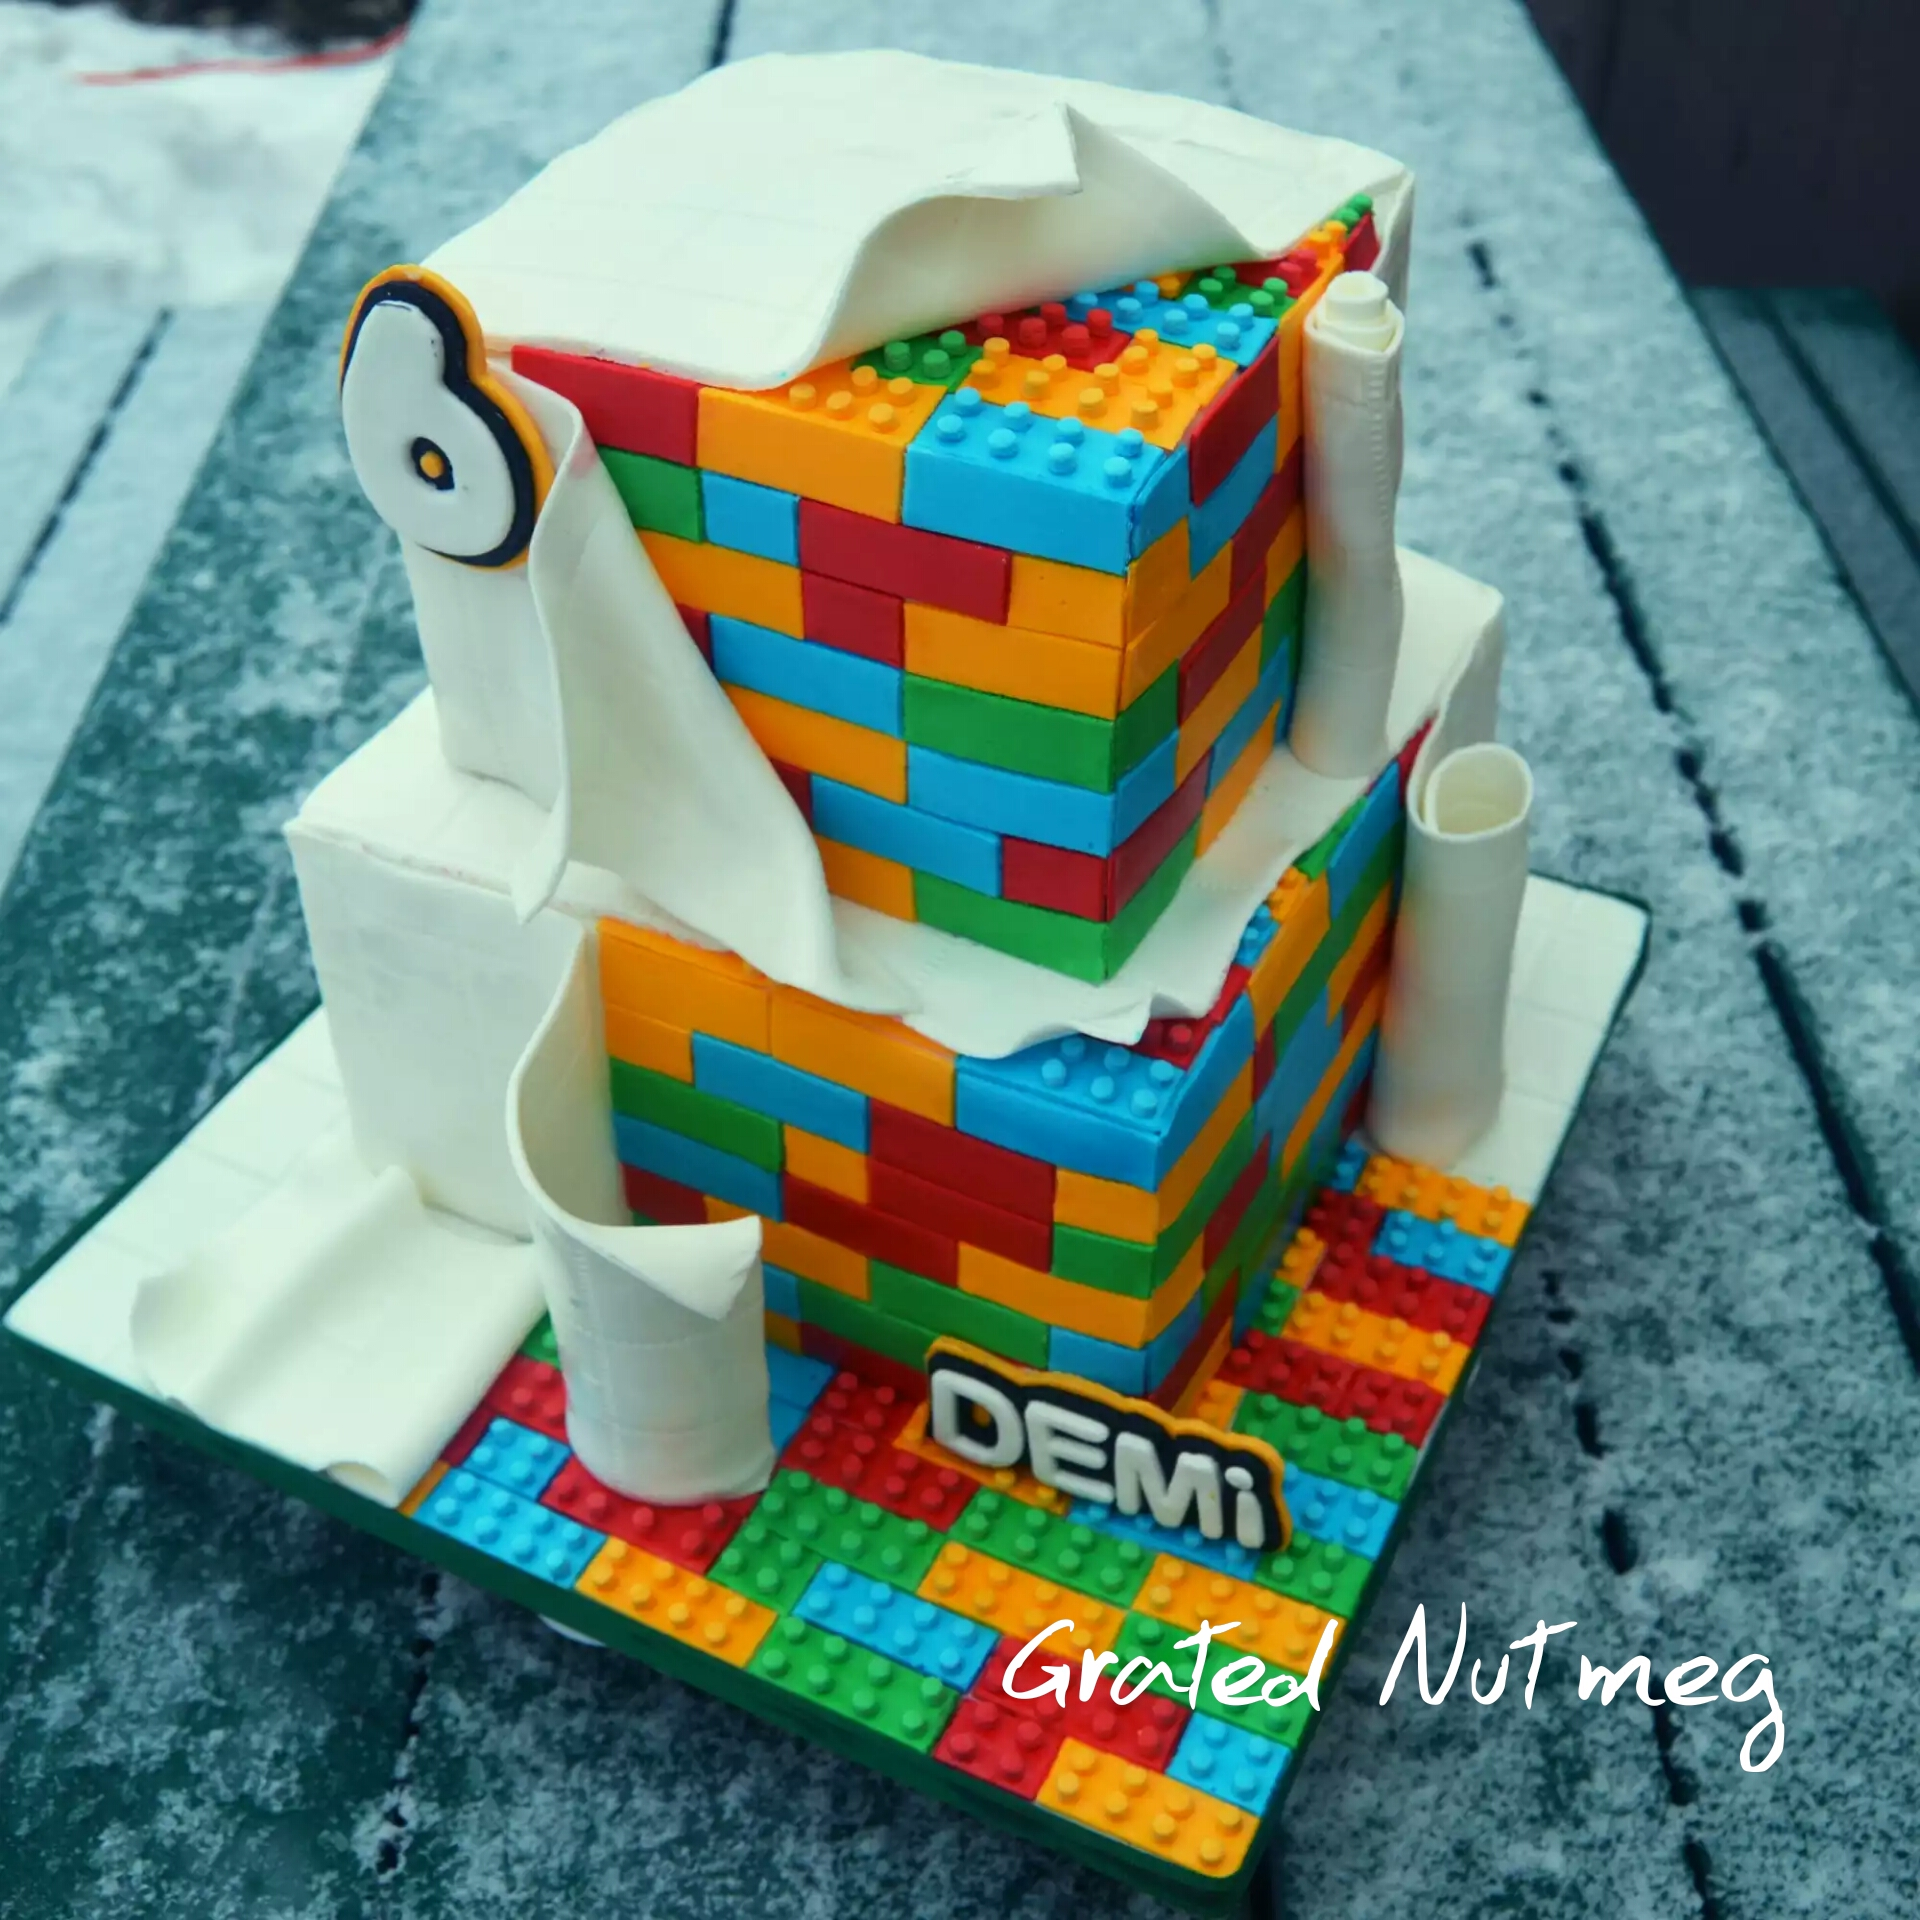 The Making of a Lego Cake – Grated Nutmeg